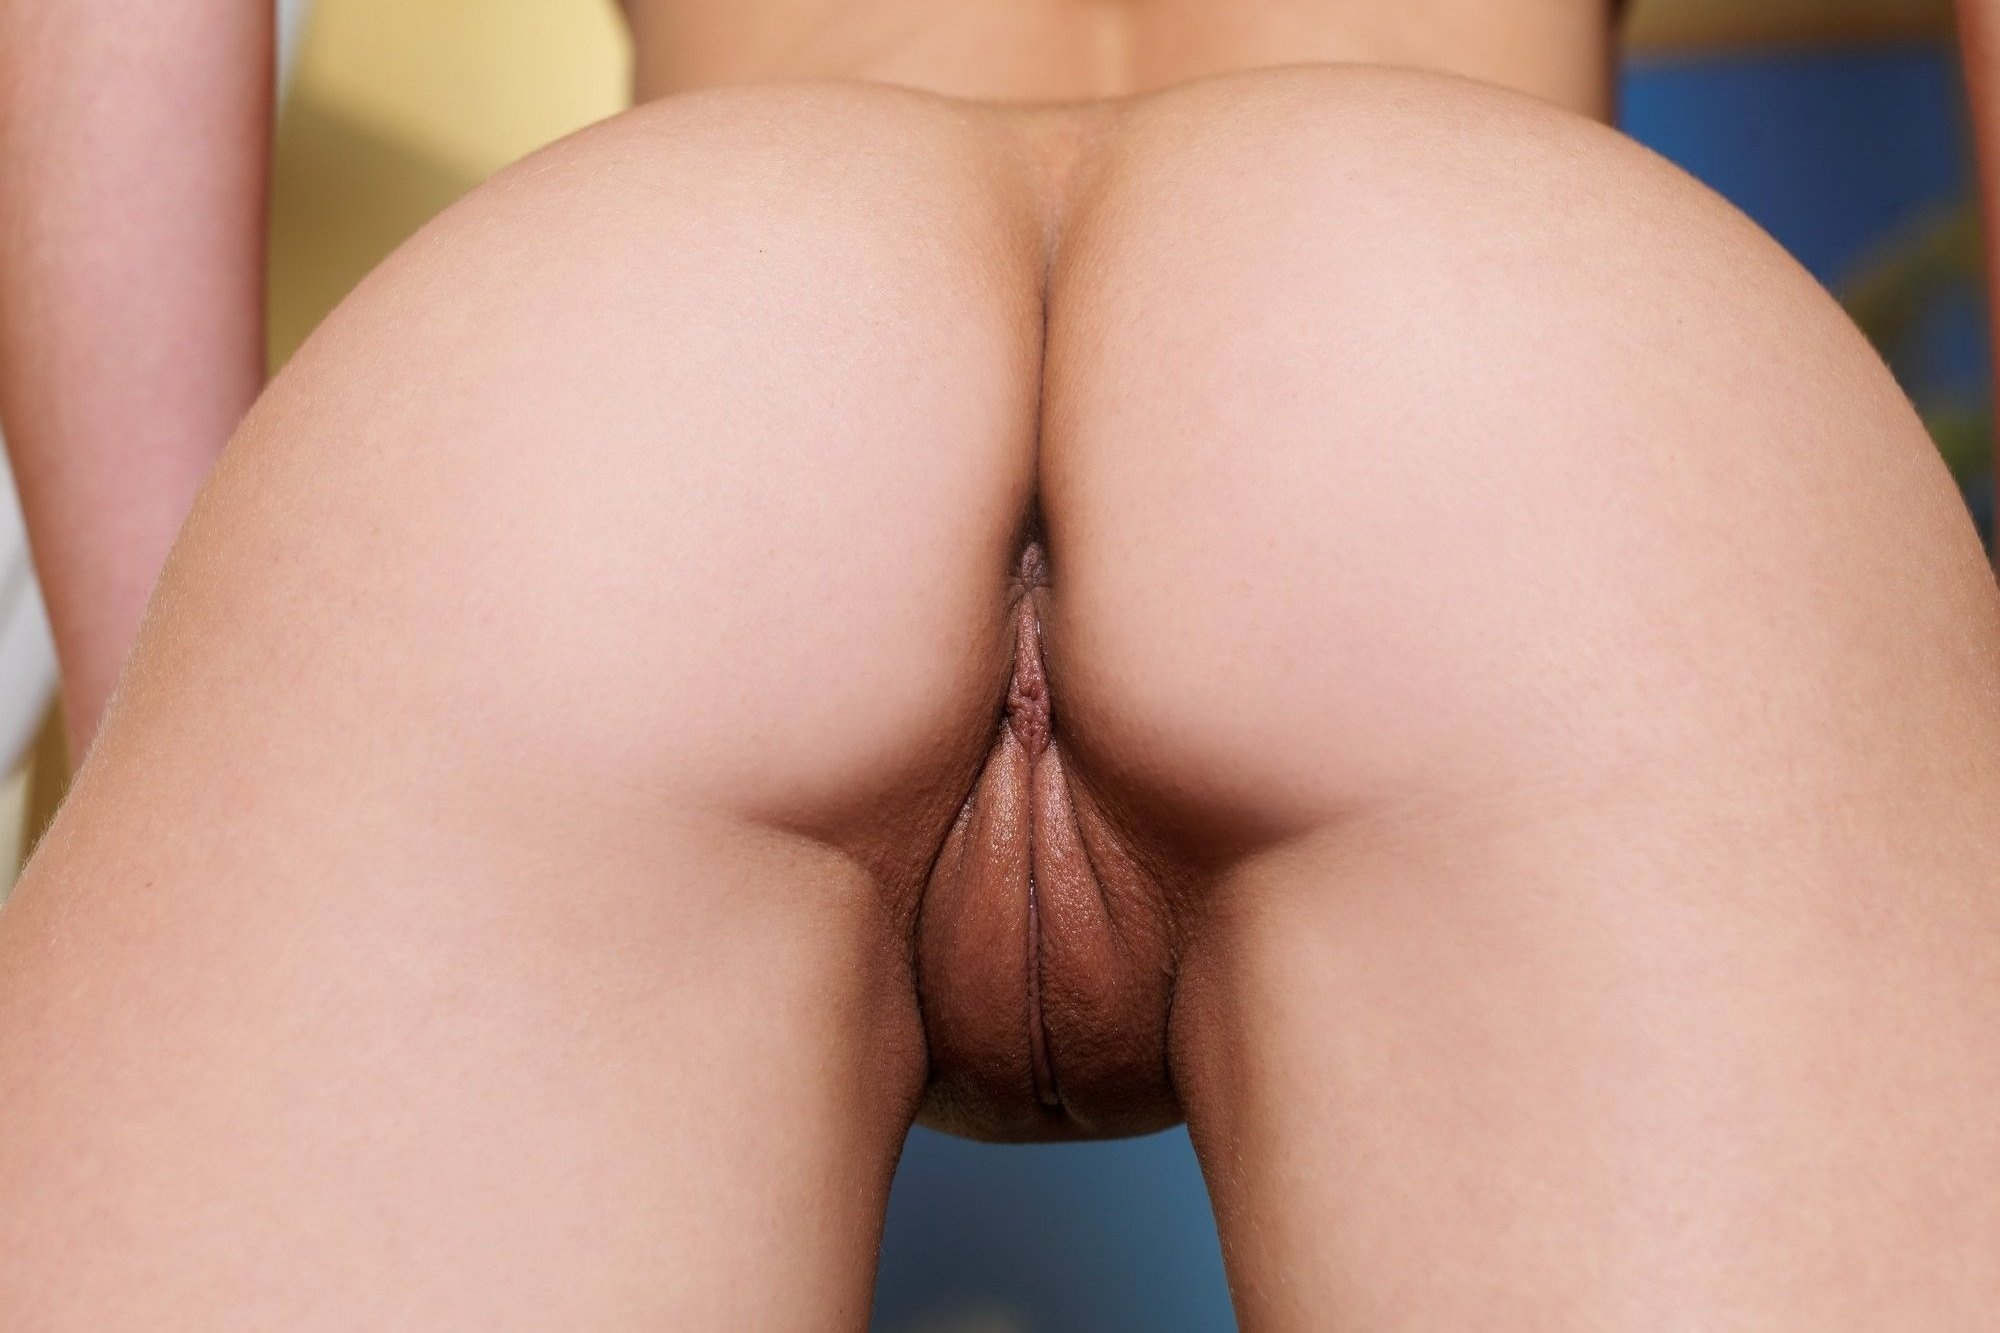 Download photo 2000x1333, ass, pussy, close up, hot, niki ...